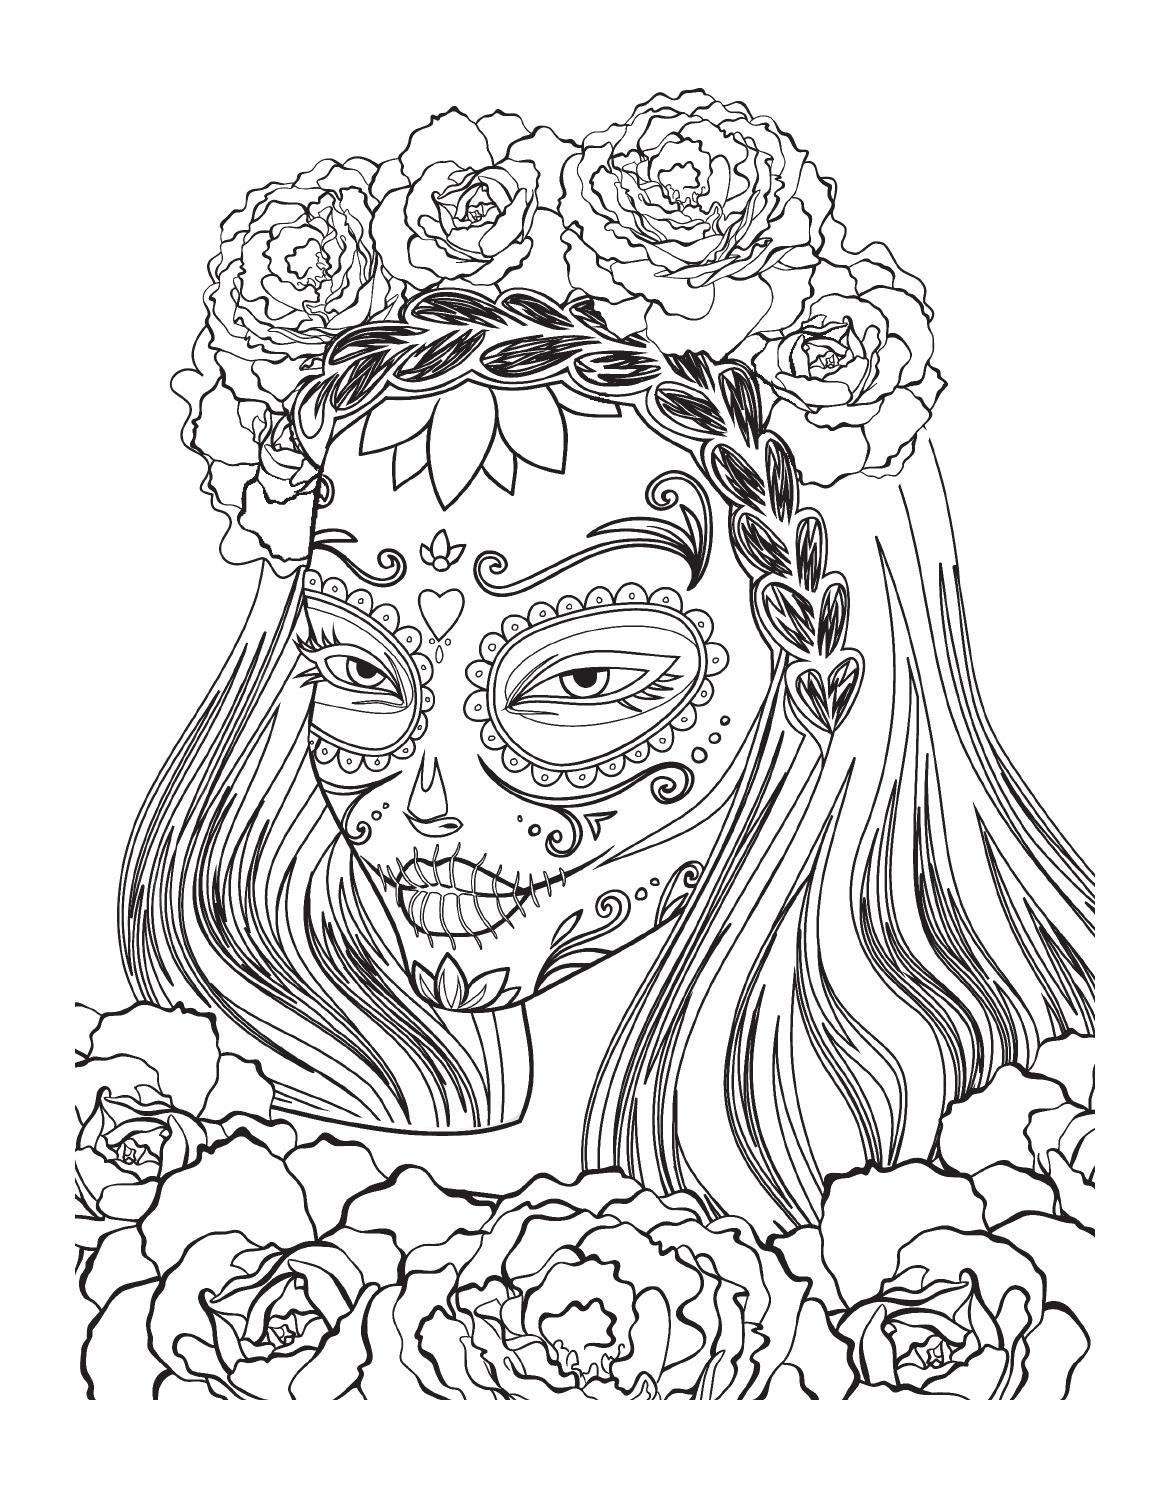 Arteterapie vysm t lebky by nakladatelstv jota issuu for Mexican coloring pages for adults